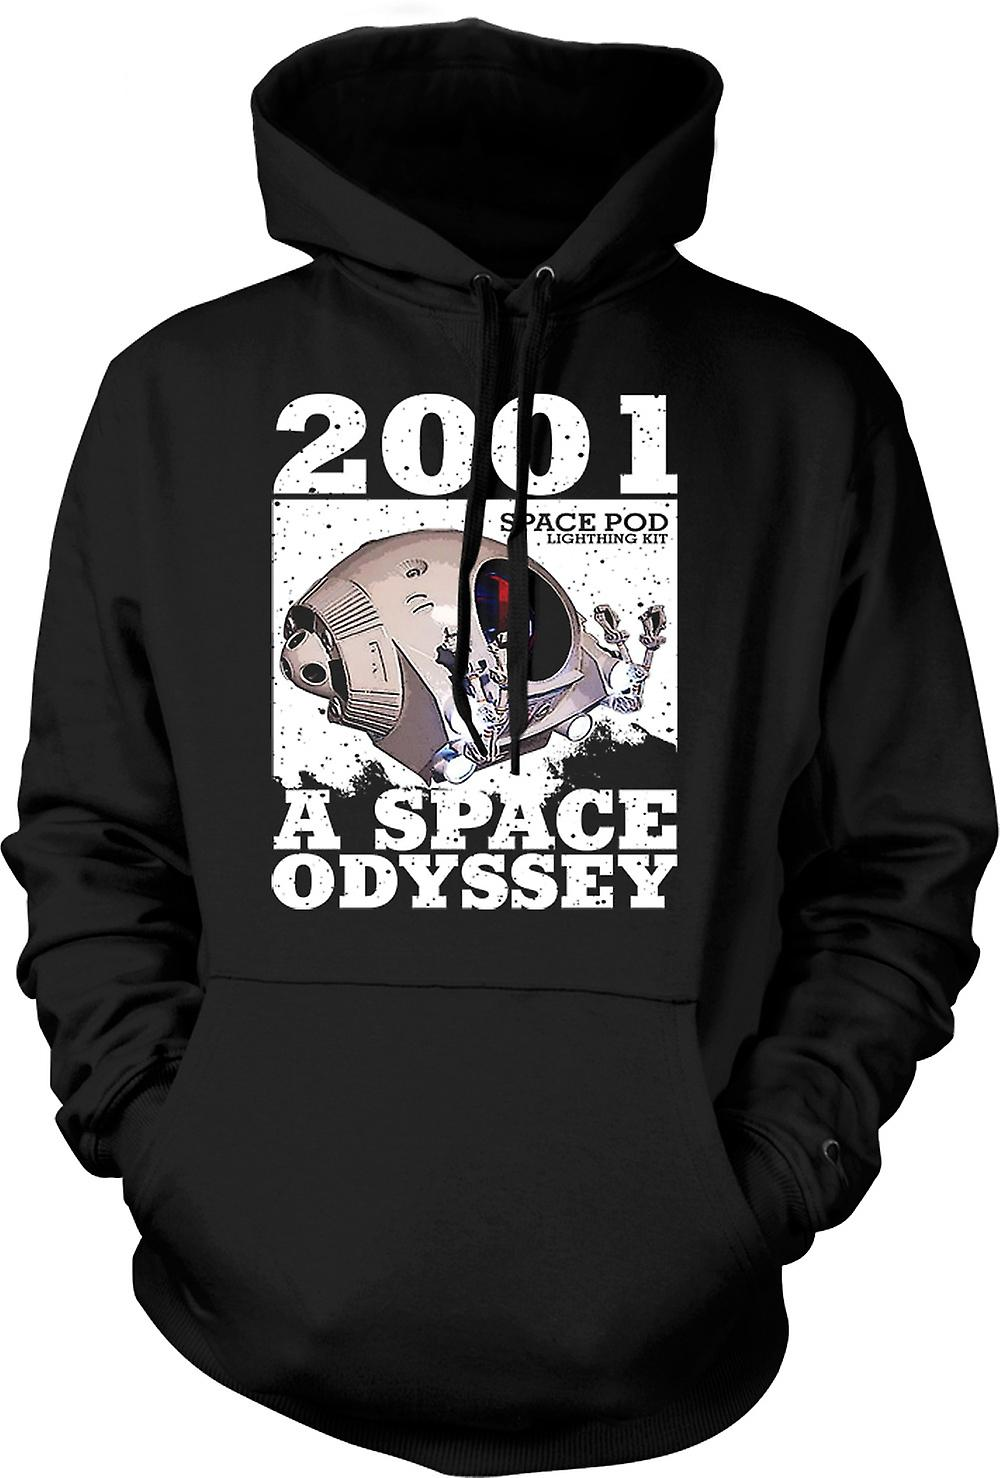 Kids Hoodie - 2001 Space Odyssey - Space Pod